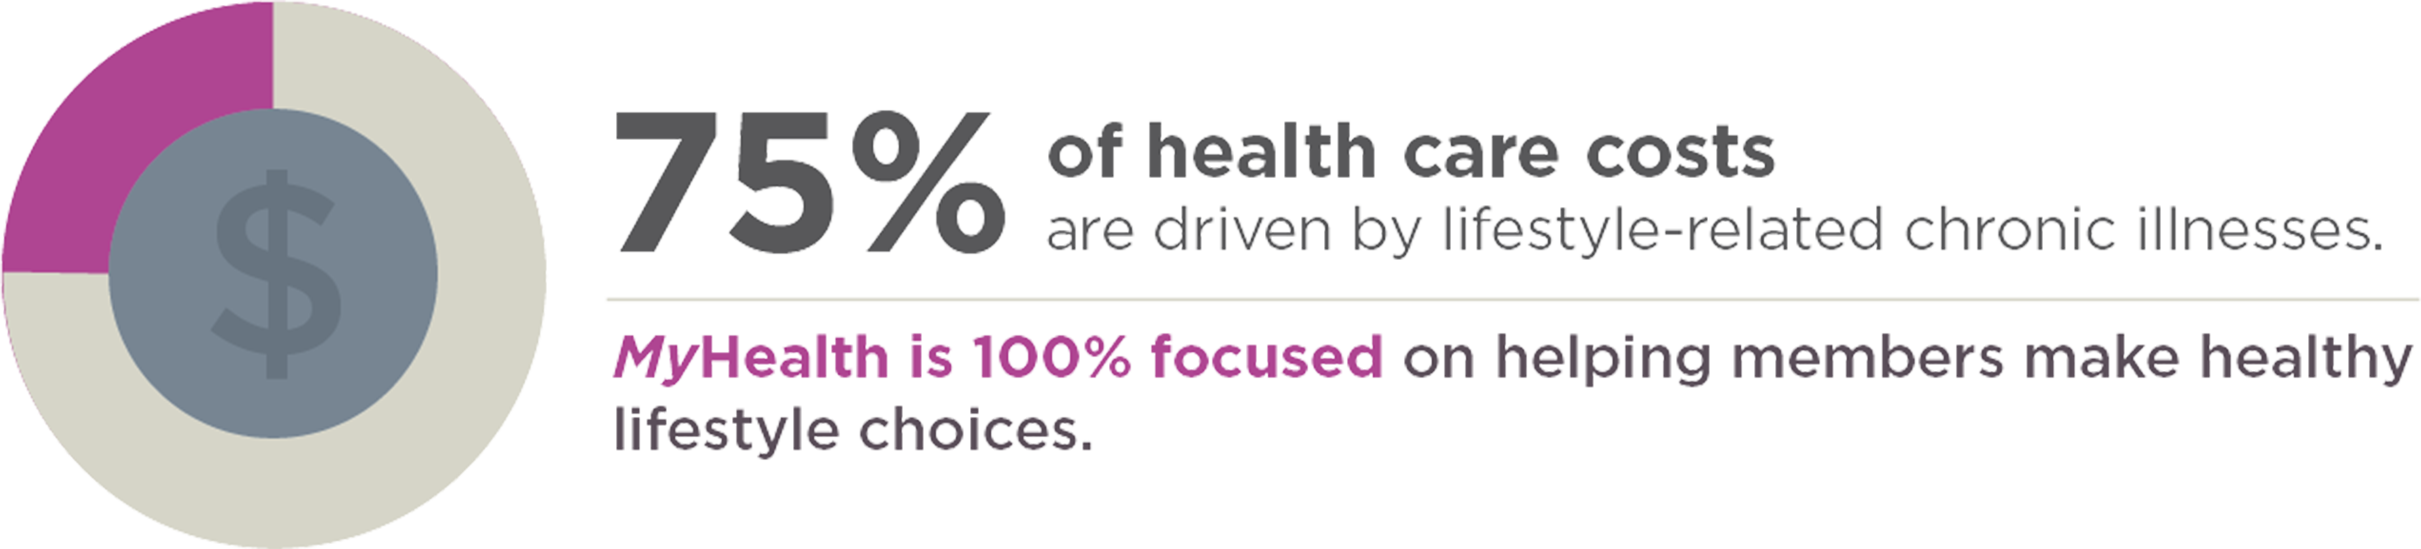 75% of health care costs are driven by lifestyle-related chronic illnesses